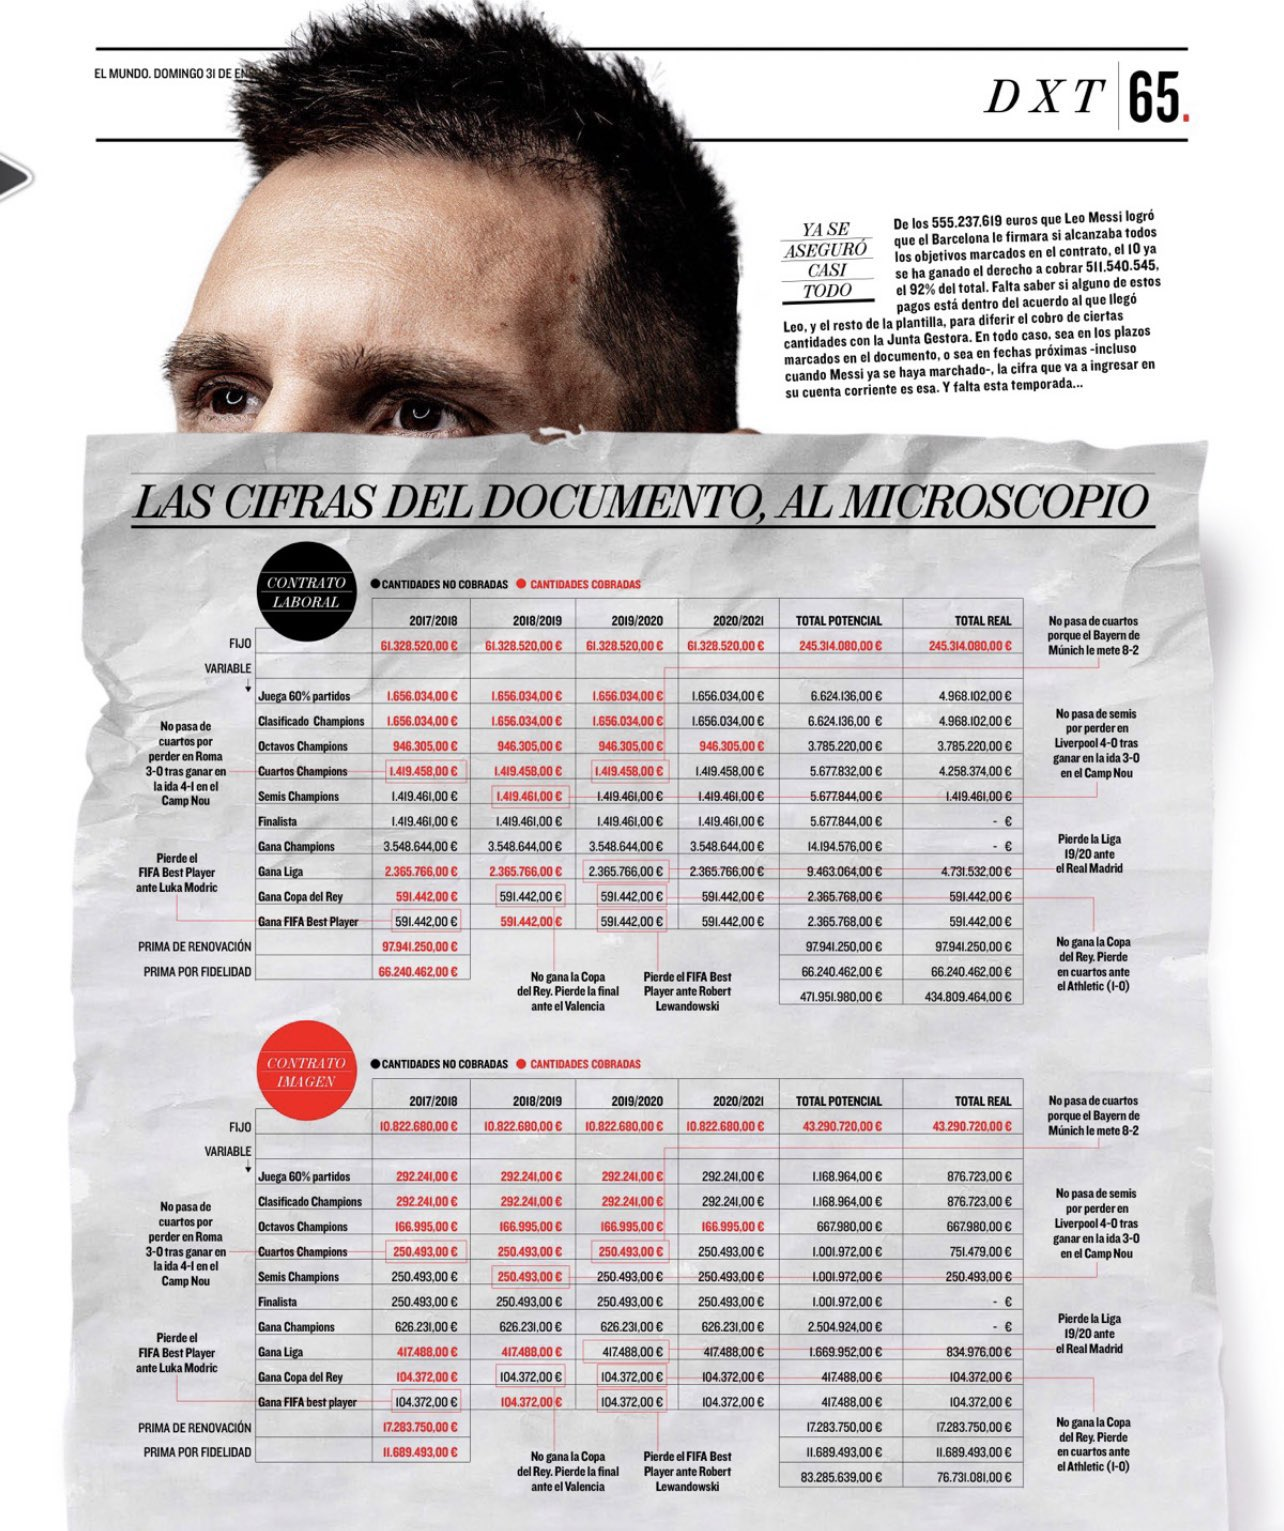 News from 'El Mundo' about Messi's contract / Redes